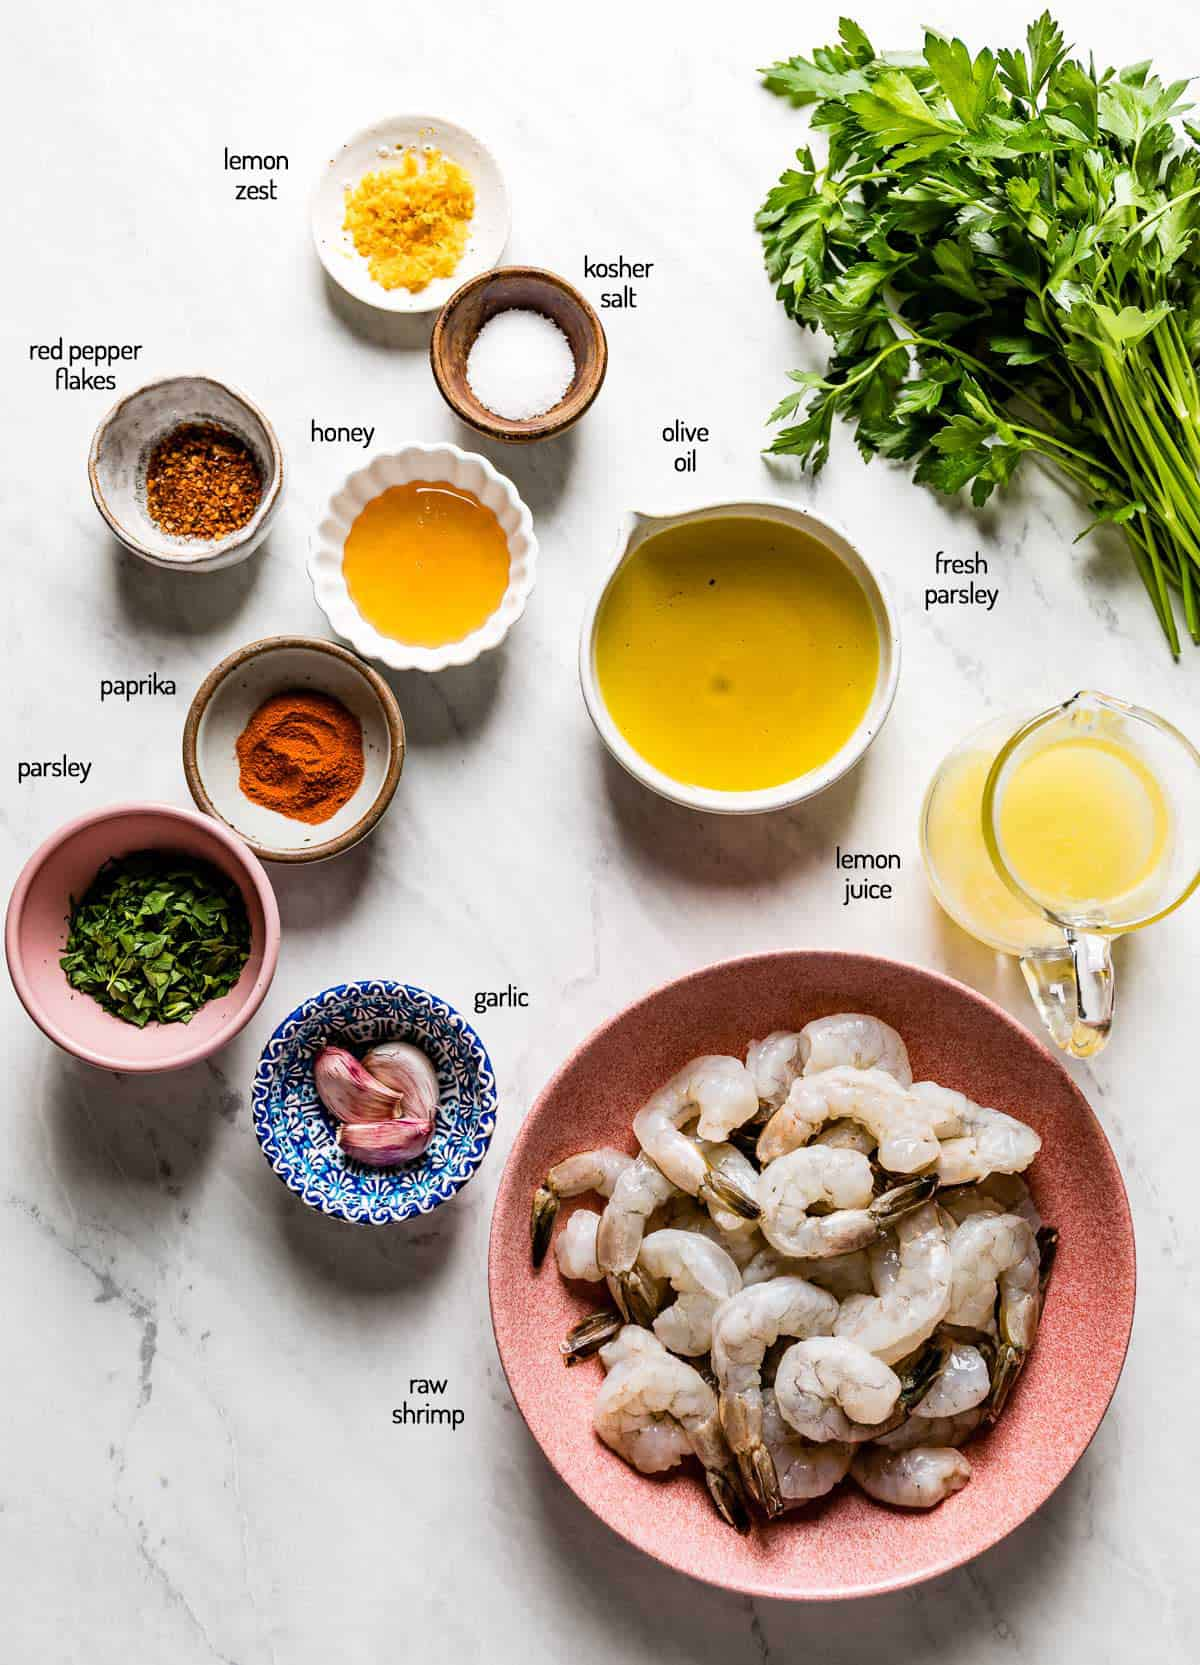 Ingredients for the marinade are photographed from the top view